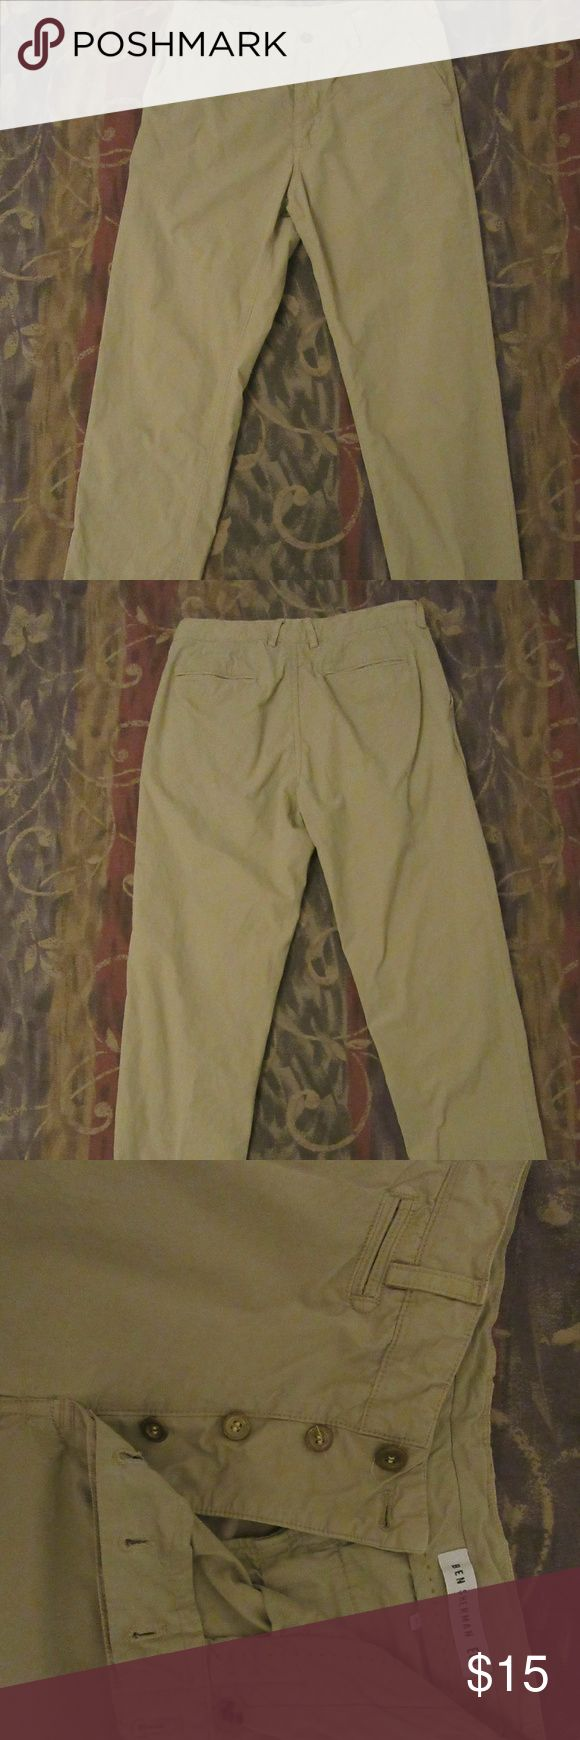 MENS BEN SHERMAN EC1 CHINO PANTS SZ 31X31 STONE good shape: has some marks seen in pics ,could be spot washed   MENS BEN SHERMAN EC1 CHINO PANTS SZ 31X31 STONE Ben Sherman Pants Chinos & Khakis